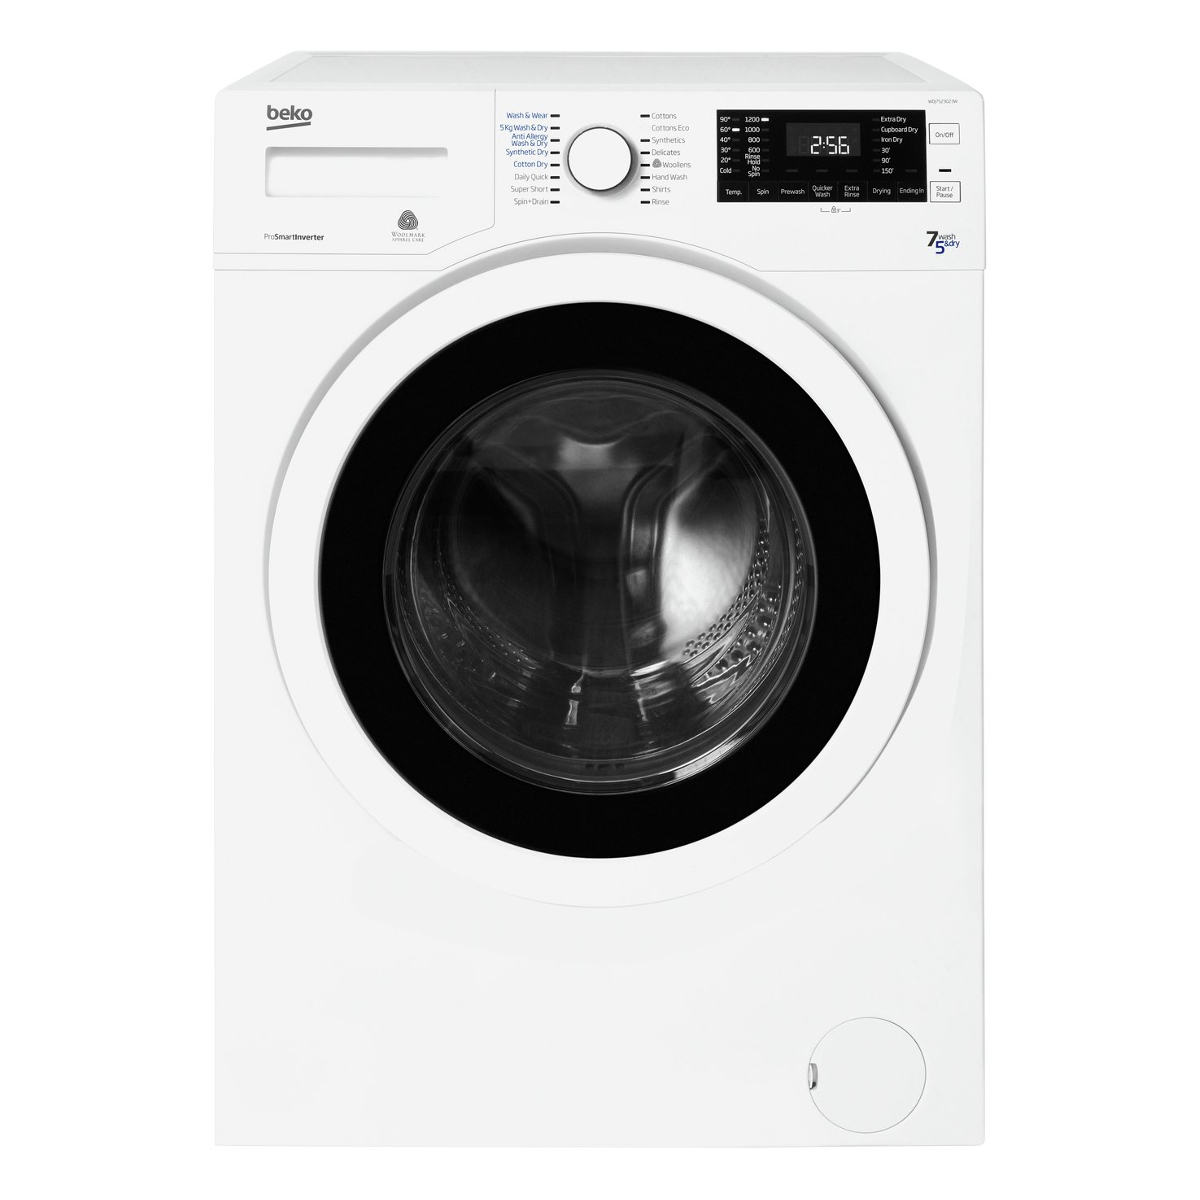 Beko WDJ7523023W Freestanding Washer Dryer with 7kg Wash and 5kg Dry Load Capacity in White Hughes